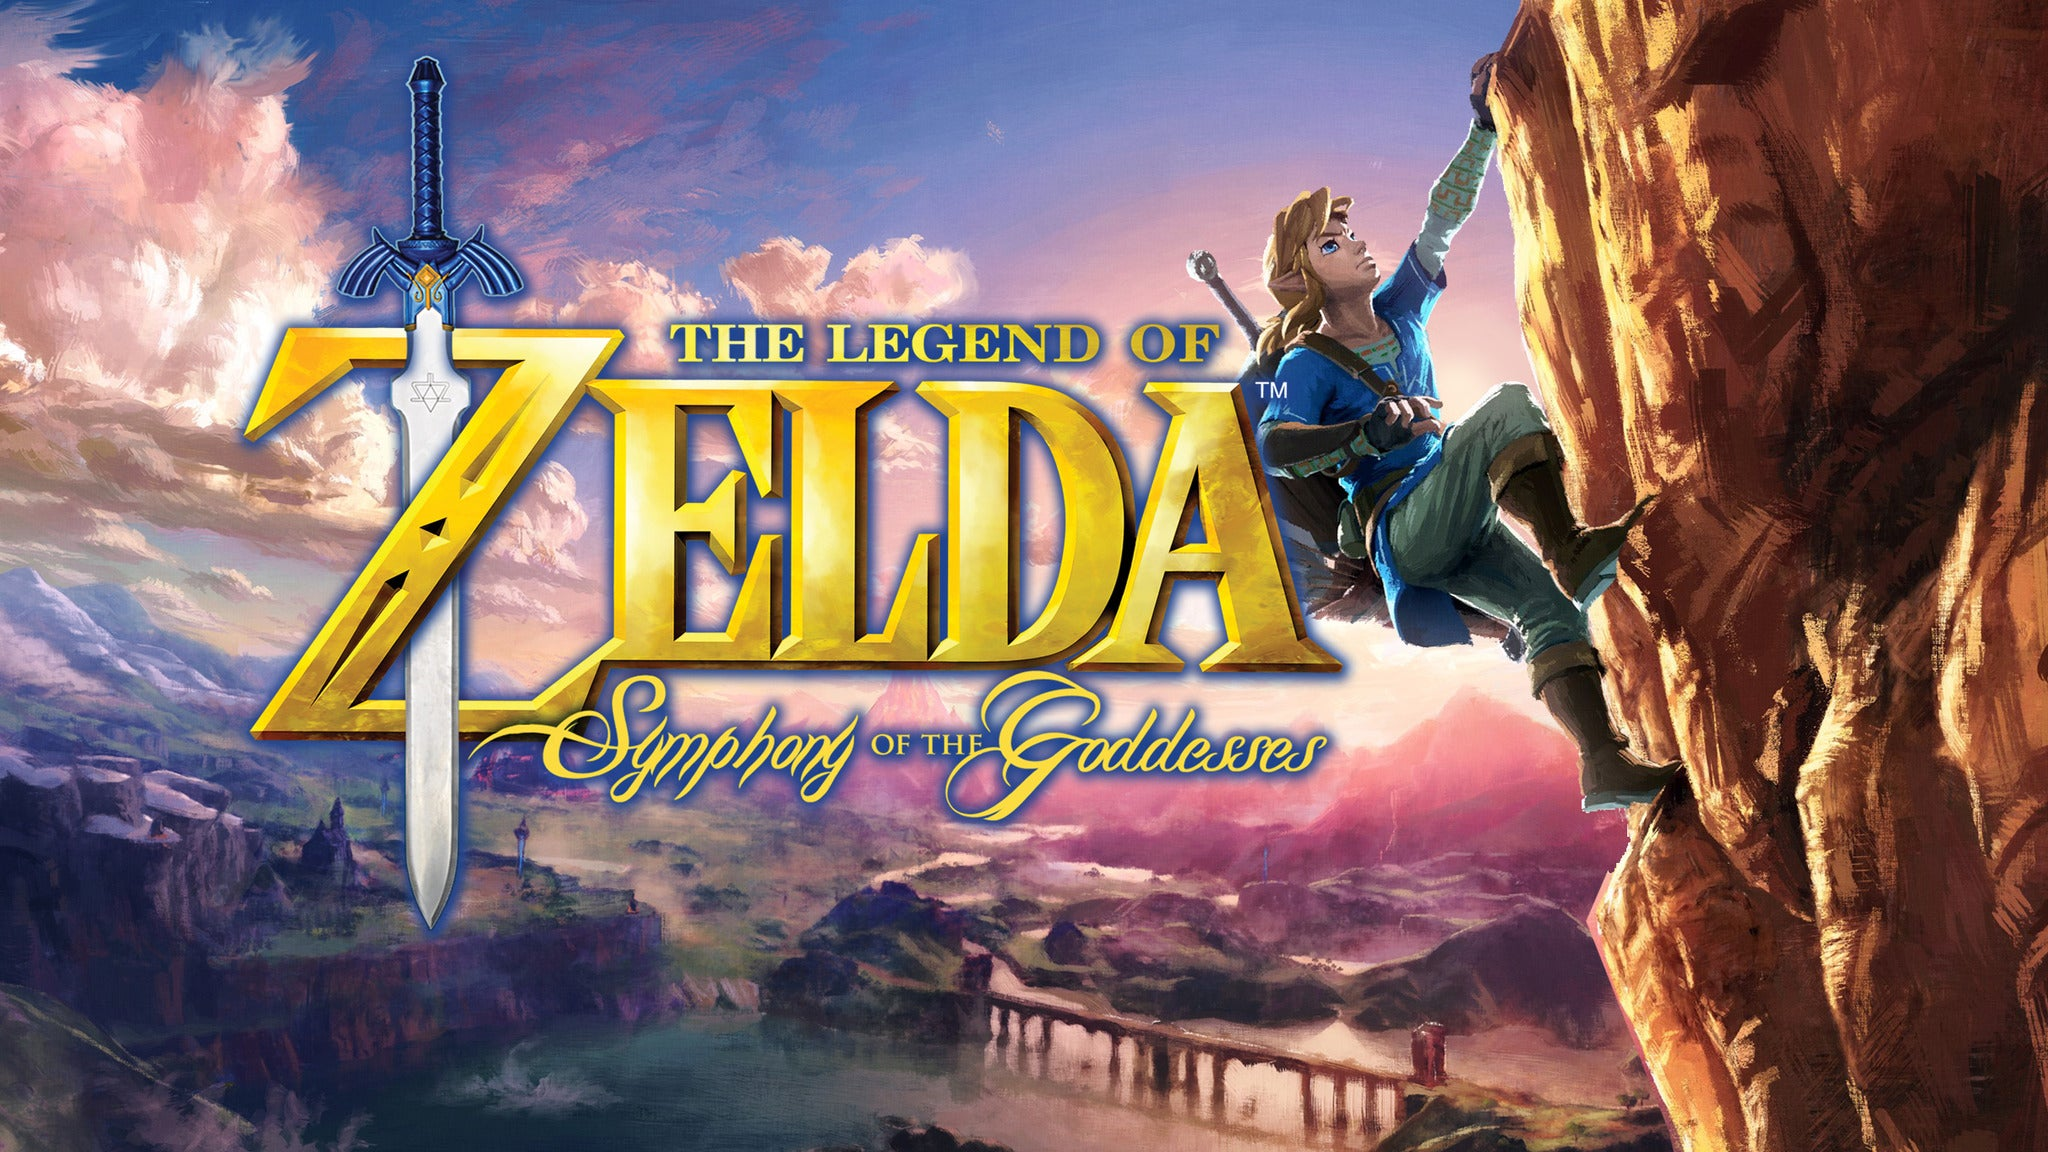 The Legend Of Zelda Symphony Of The Goddesses